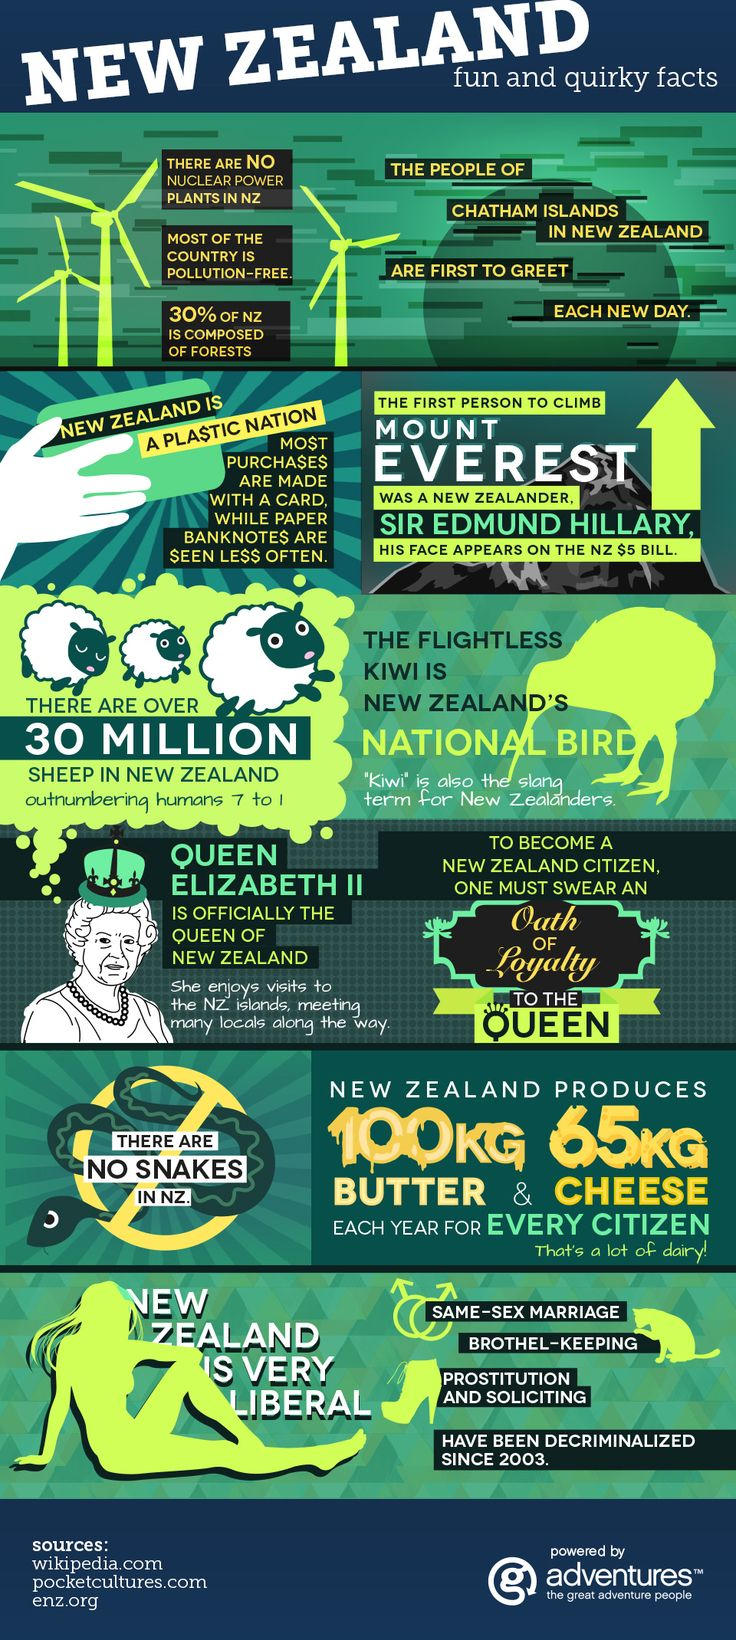 FUN AND QUIRKY FACTS ABOUT NEW ZEALAND [INFOGRAPHIC]